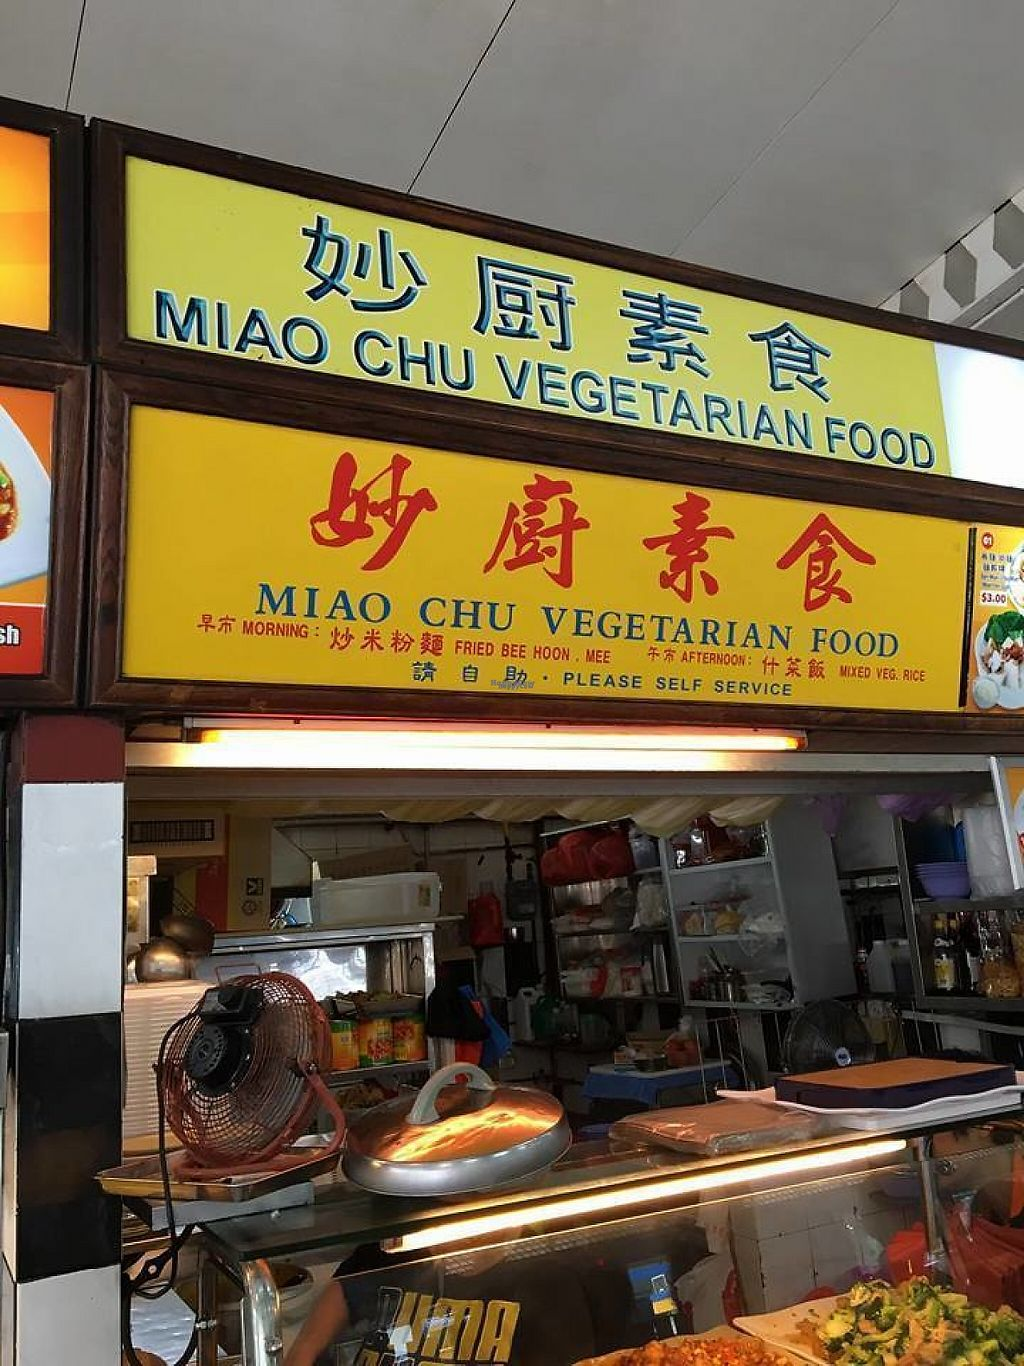 """Photo of Miao Chu Vegetarian  by <a href=""""/members/profile/JimmySeah"""">JimmySeah</a> <br/>stall front <br/> April 30, 2017  - <a href='/contact/abuse/image/91196/254117'>Report</a>"""